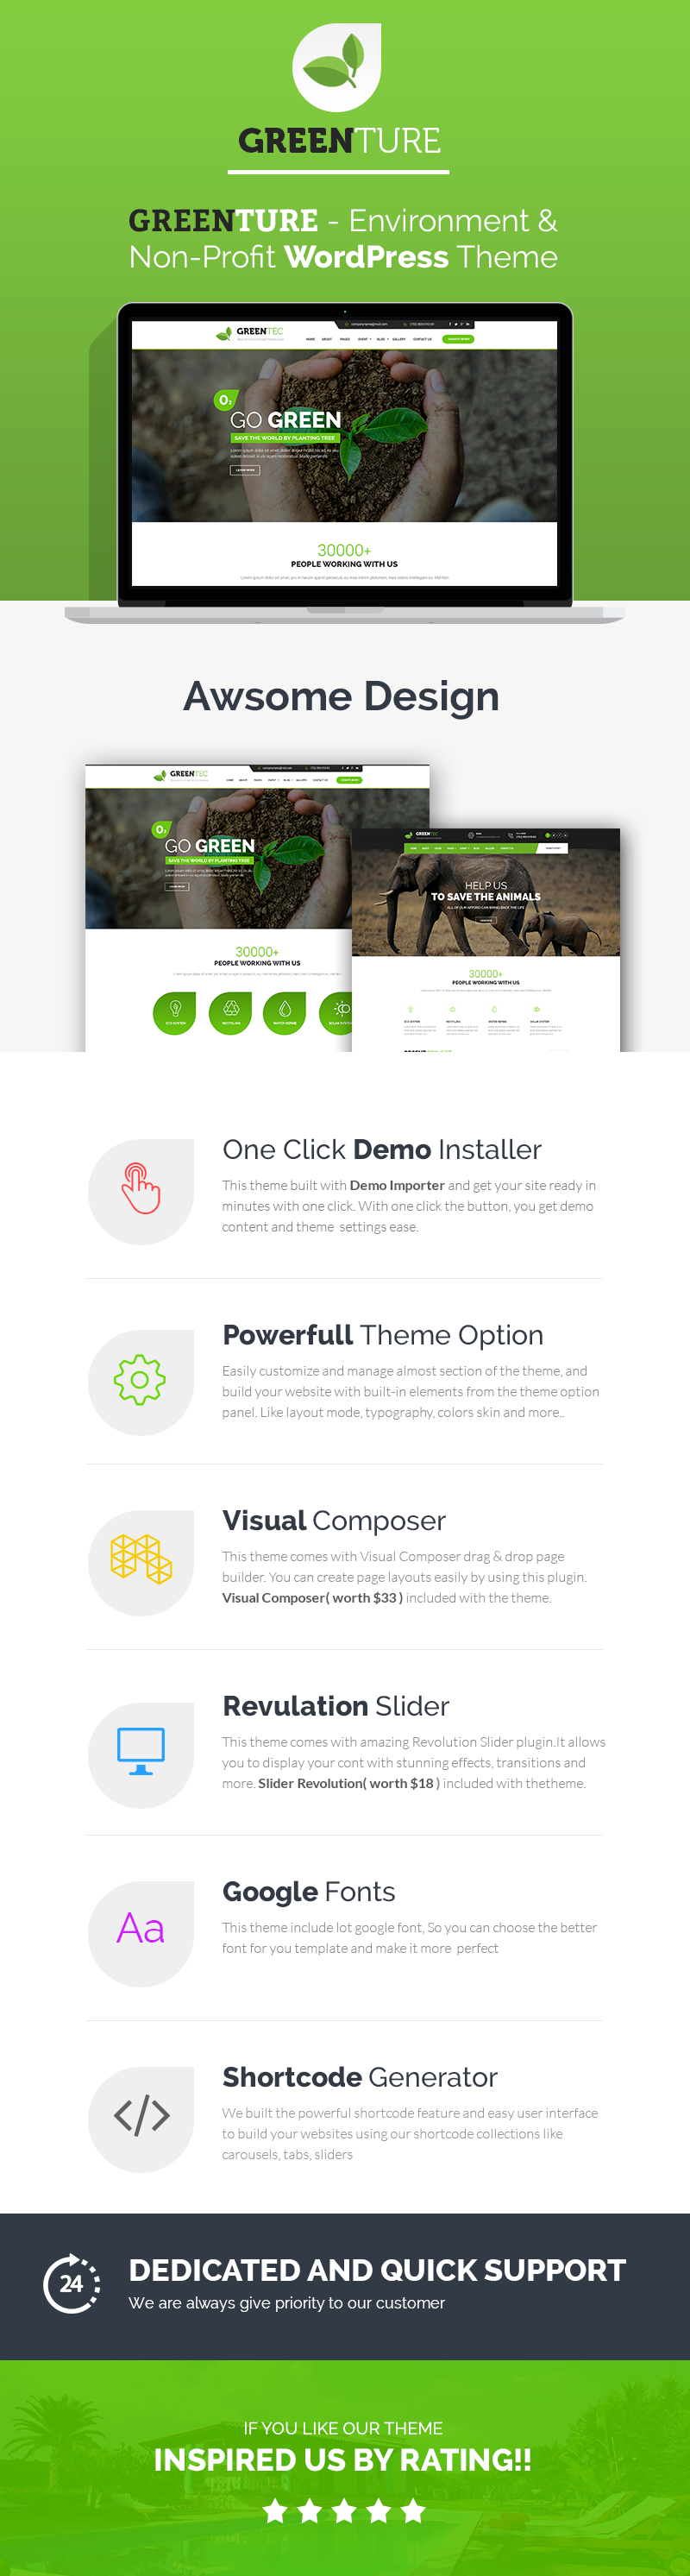 Greenture - Environment / Non-Profit WordPress Theme - 1